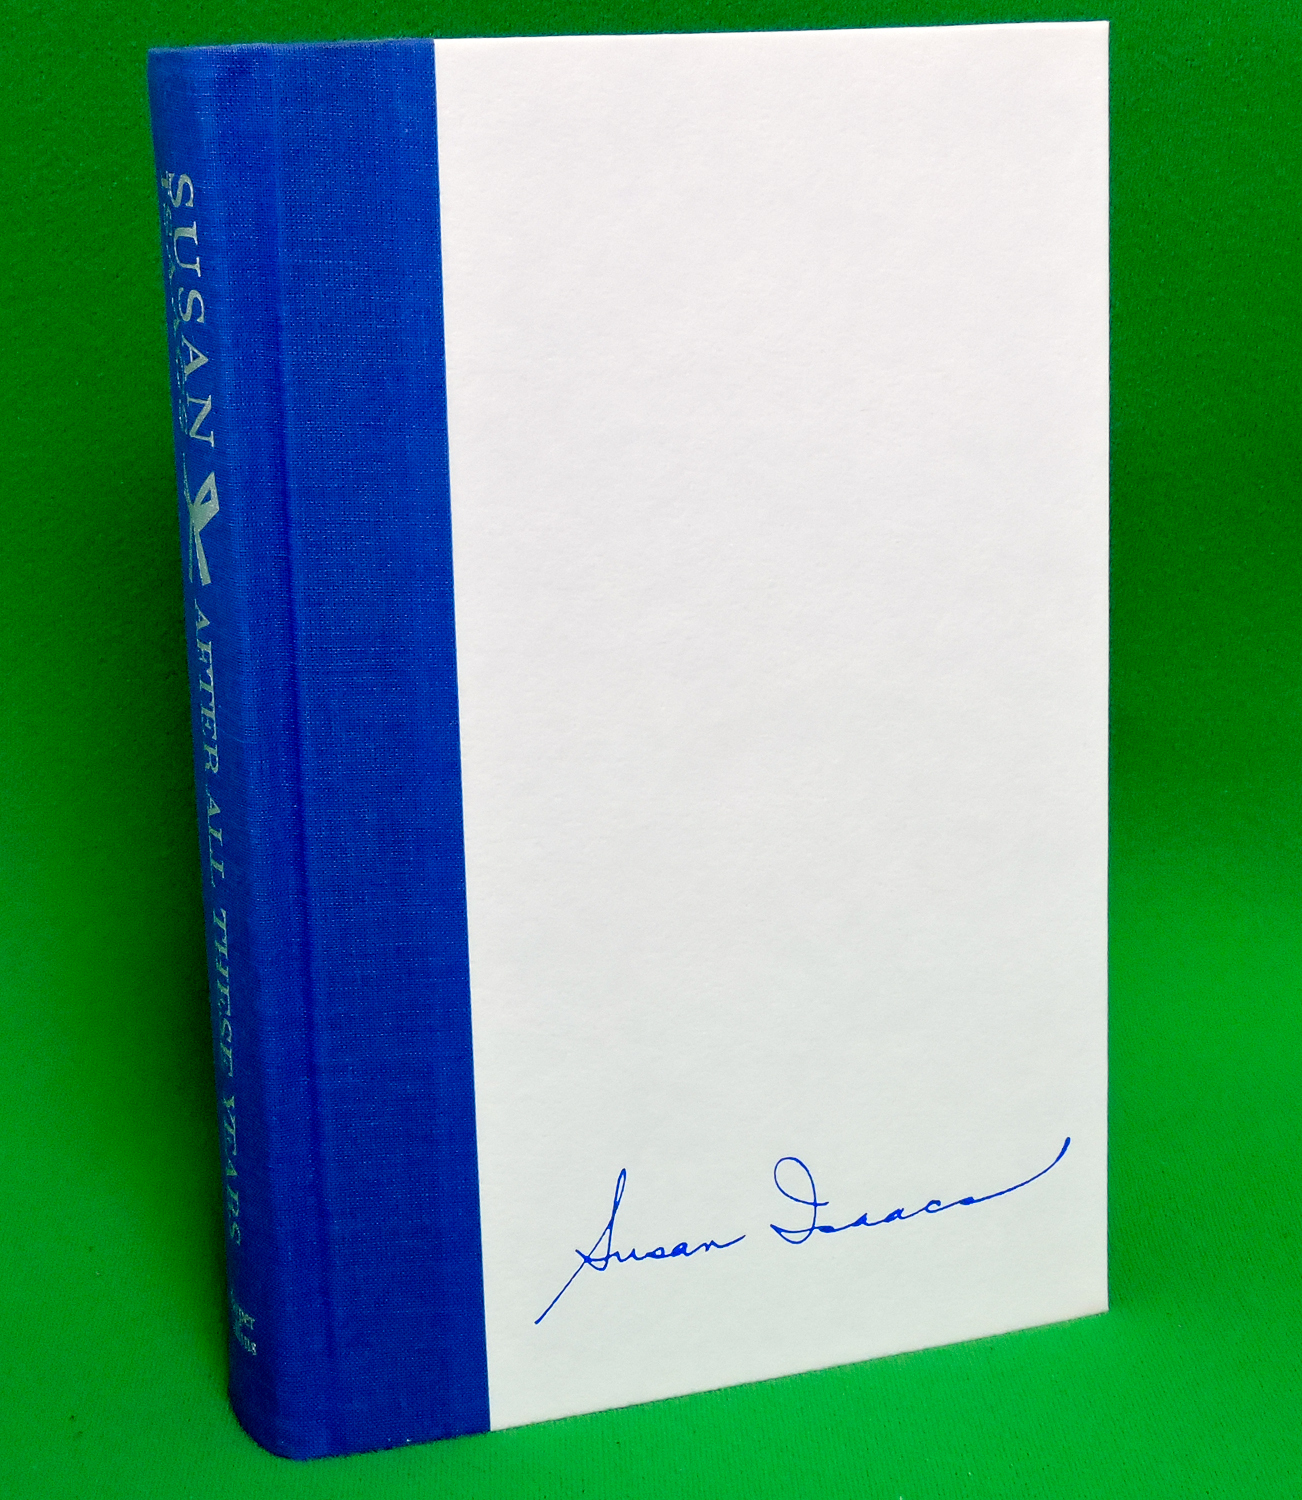 """1993 Stated 1st Edition Book, """"After All These Years"""" By Susan Issacs - Mint!"""